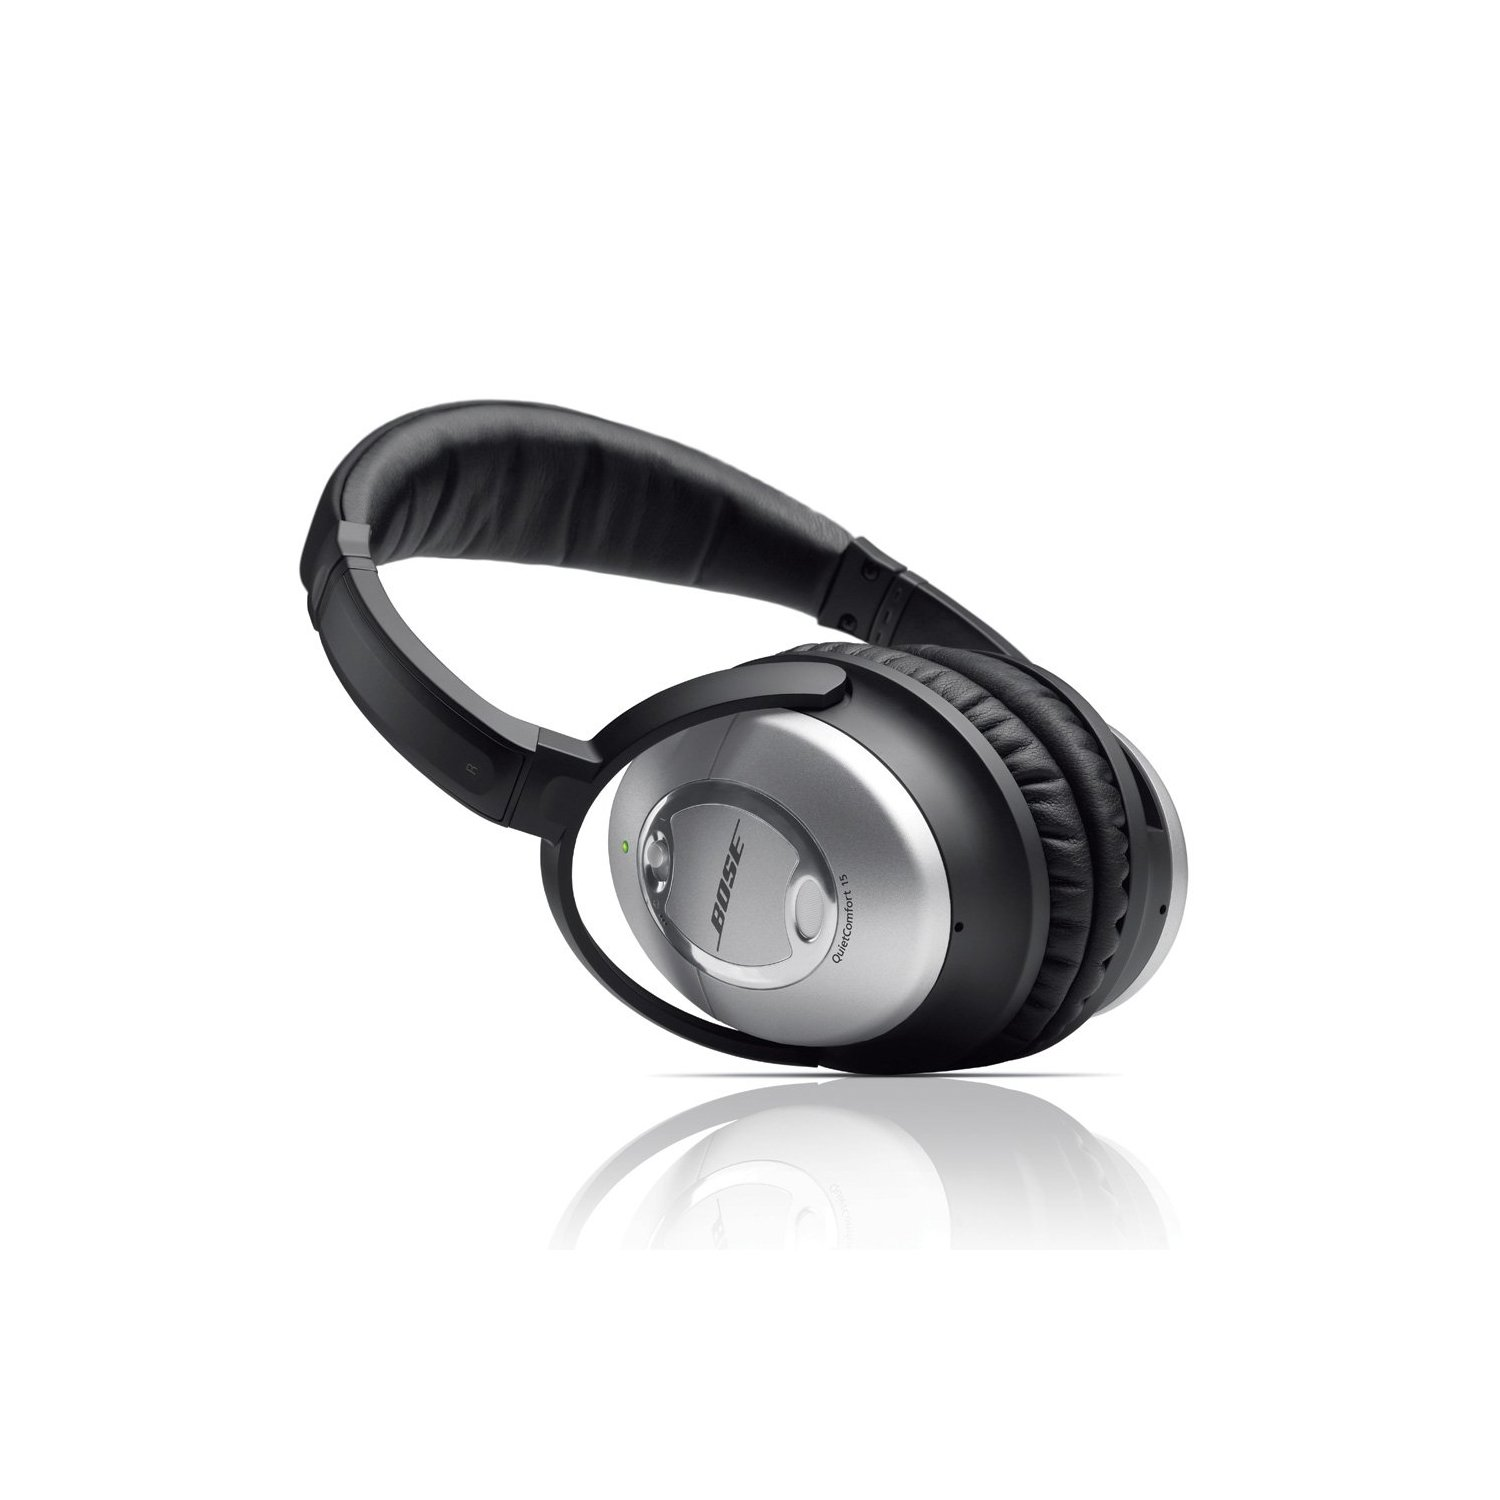 Bose Noise Cancelling Reviewed Bose Quietcomfort 15 Active Noise Cancelling